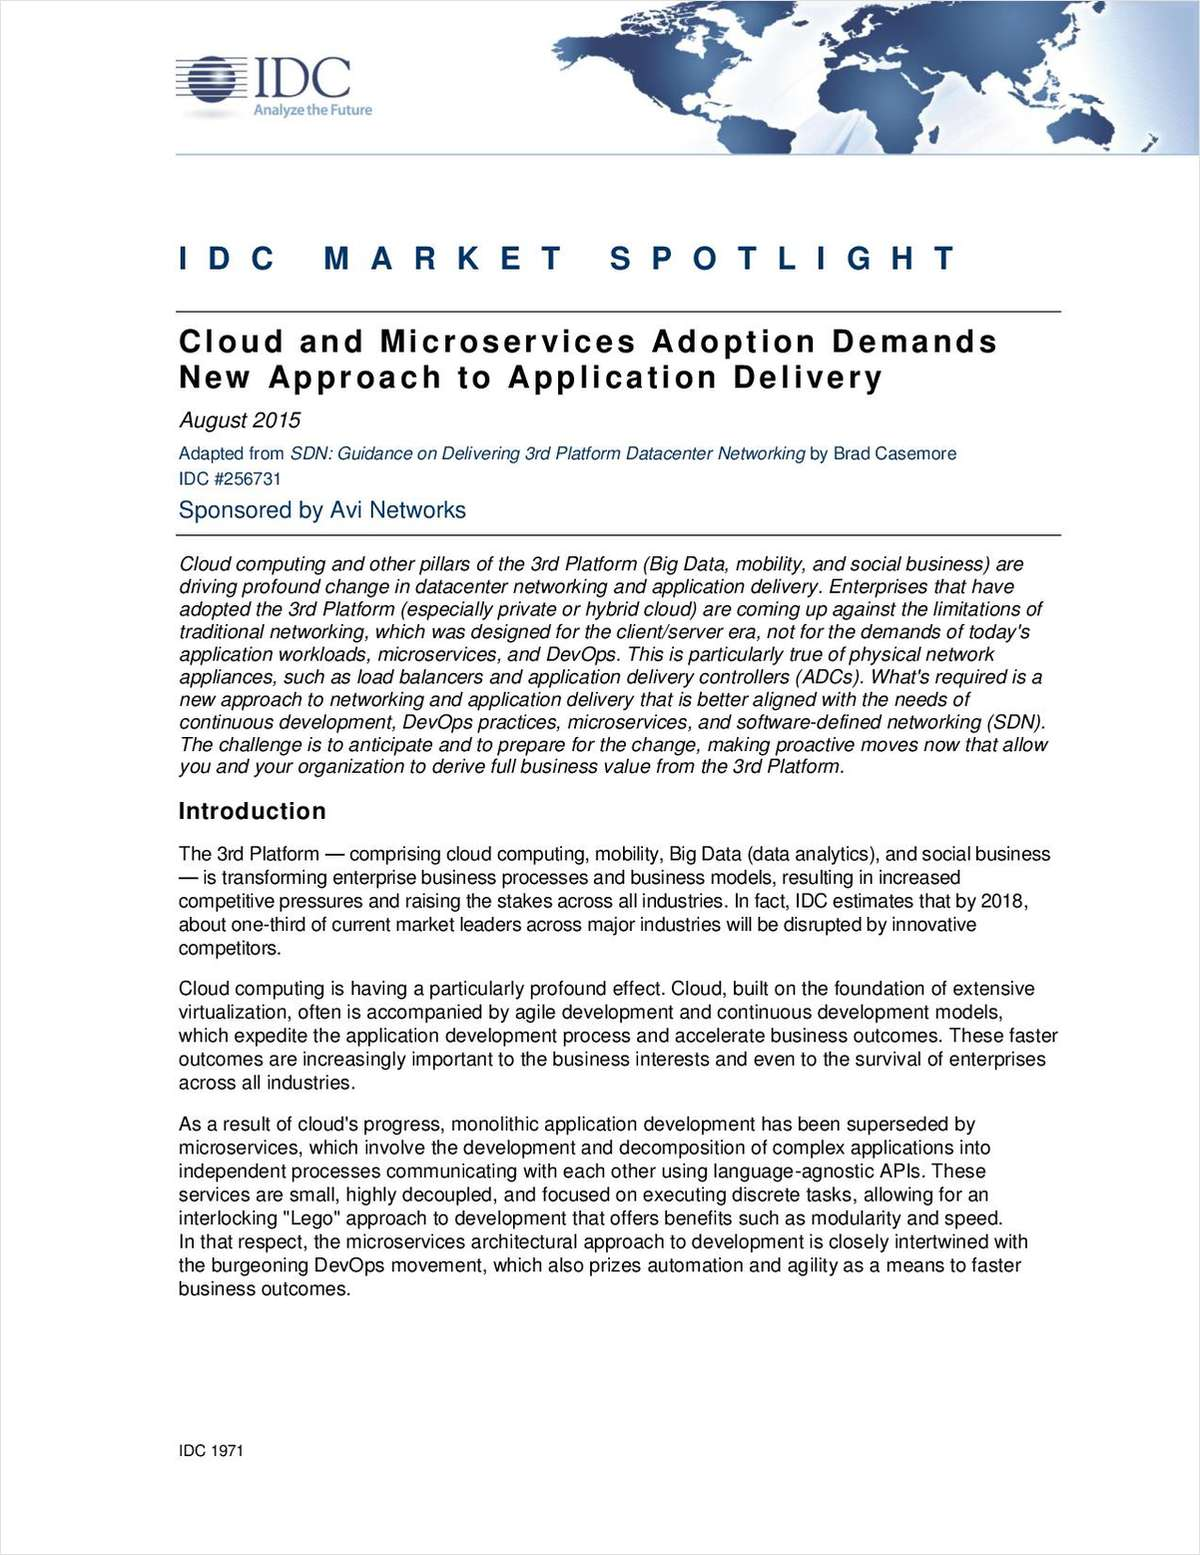 Cloud and Microservices Adoption Demands New Approach to Application Delivery